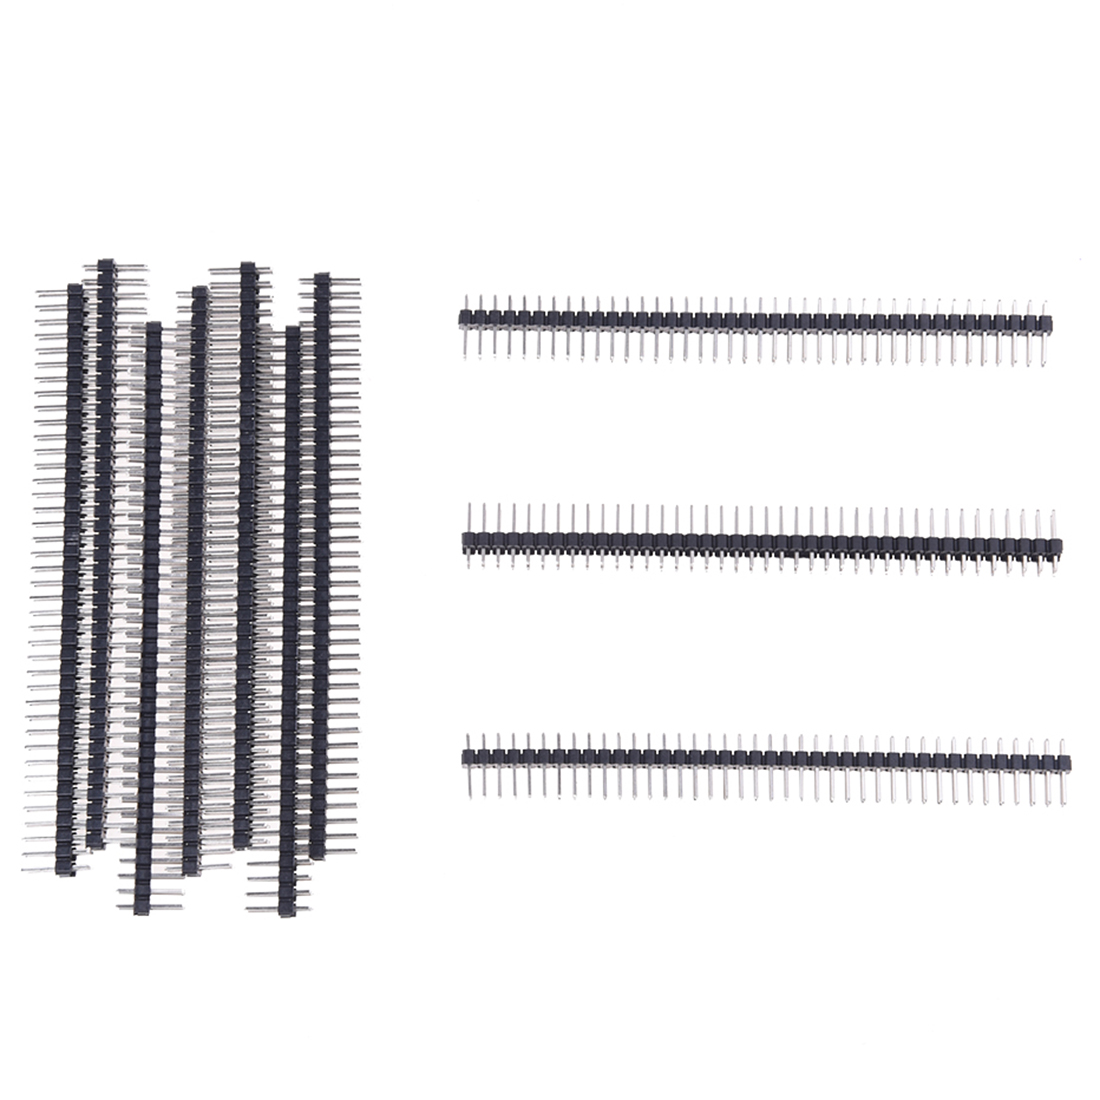 10 Pcs 2x40 Pin 2 54mm Pitch Double Row Pcb Pin Headers